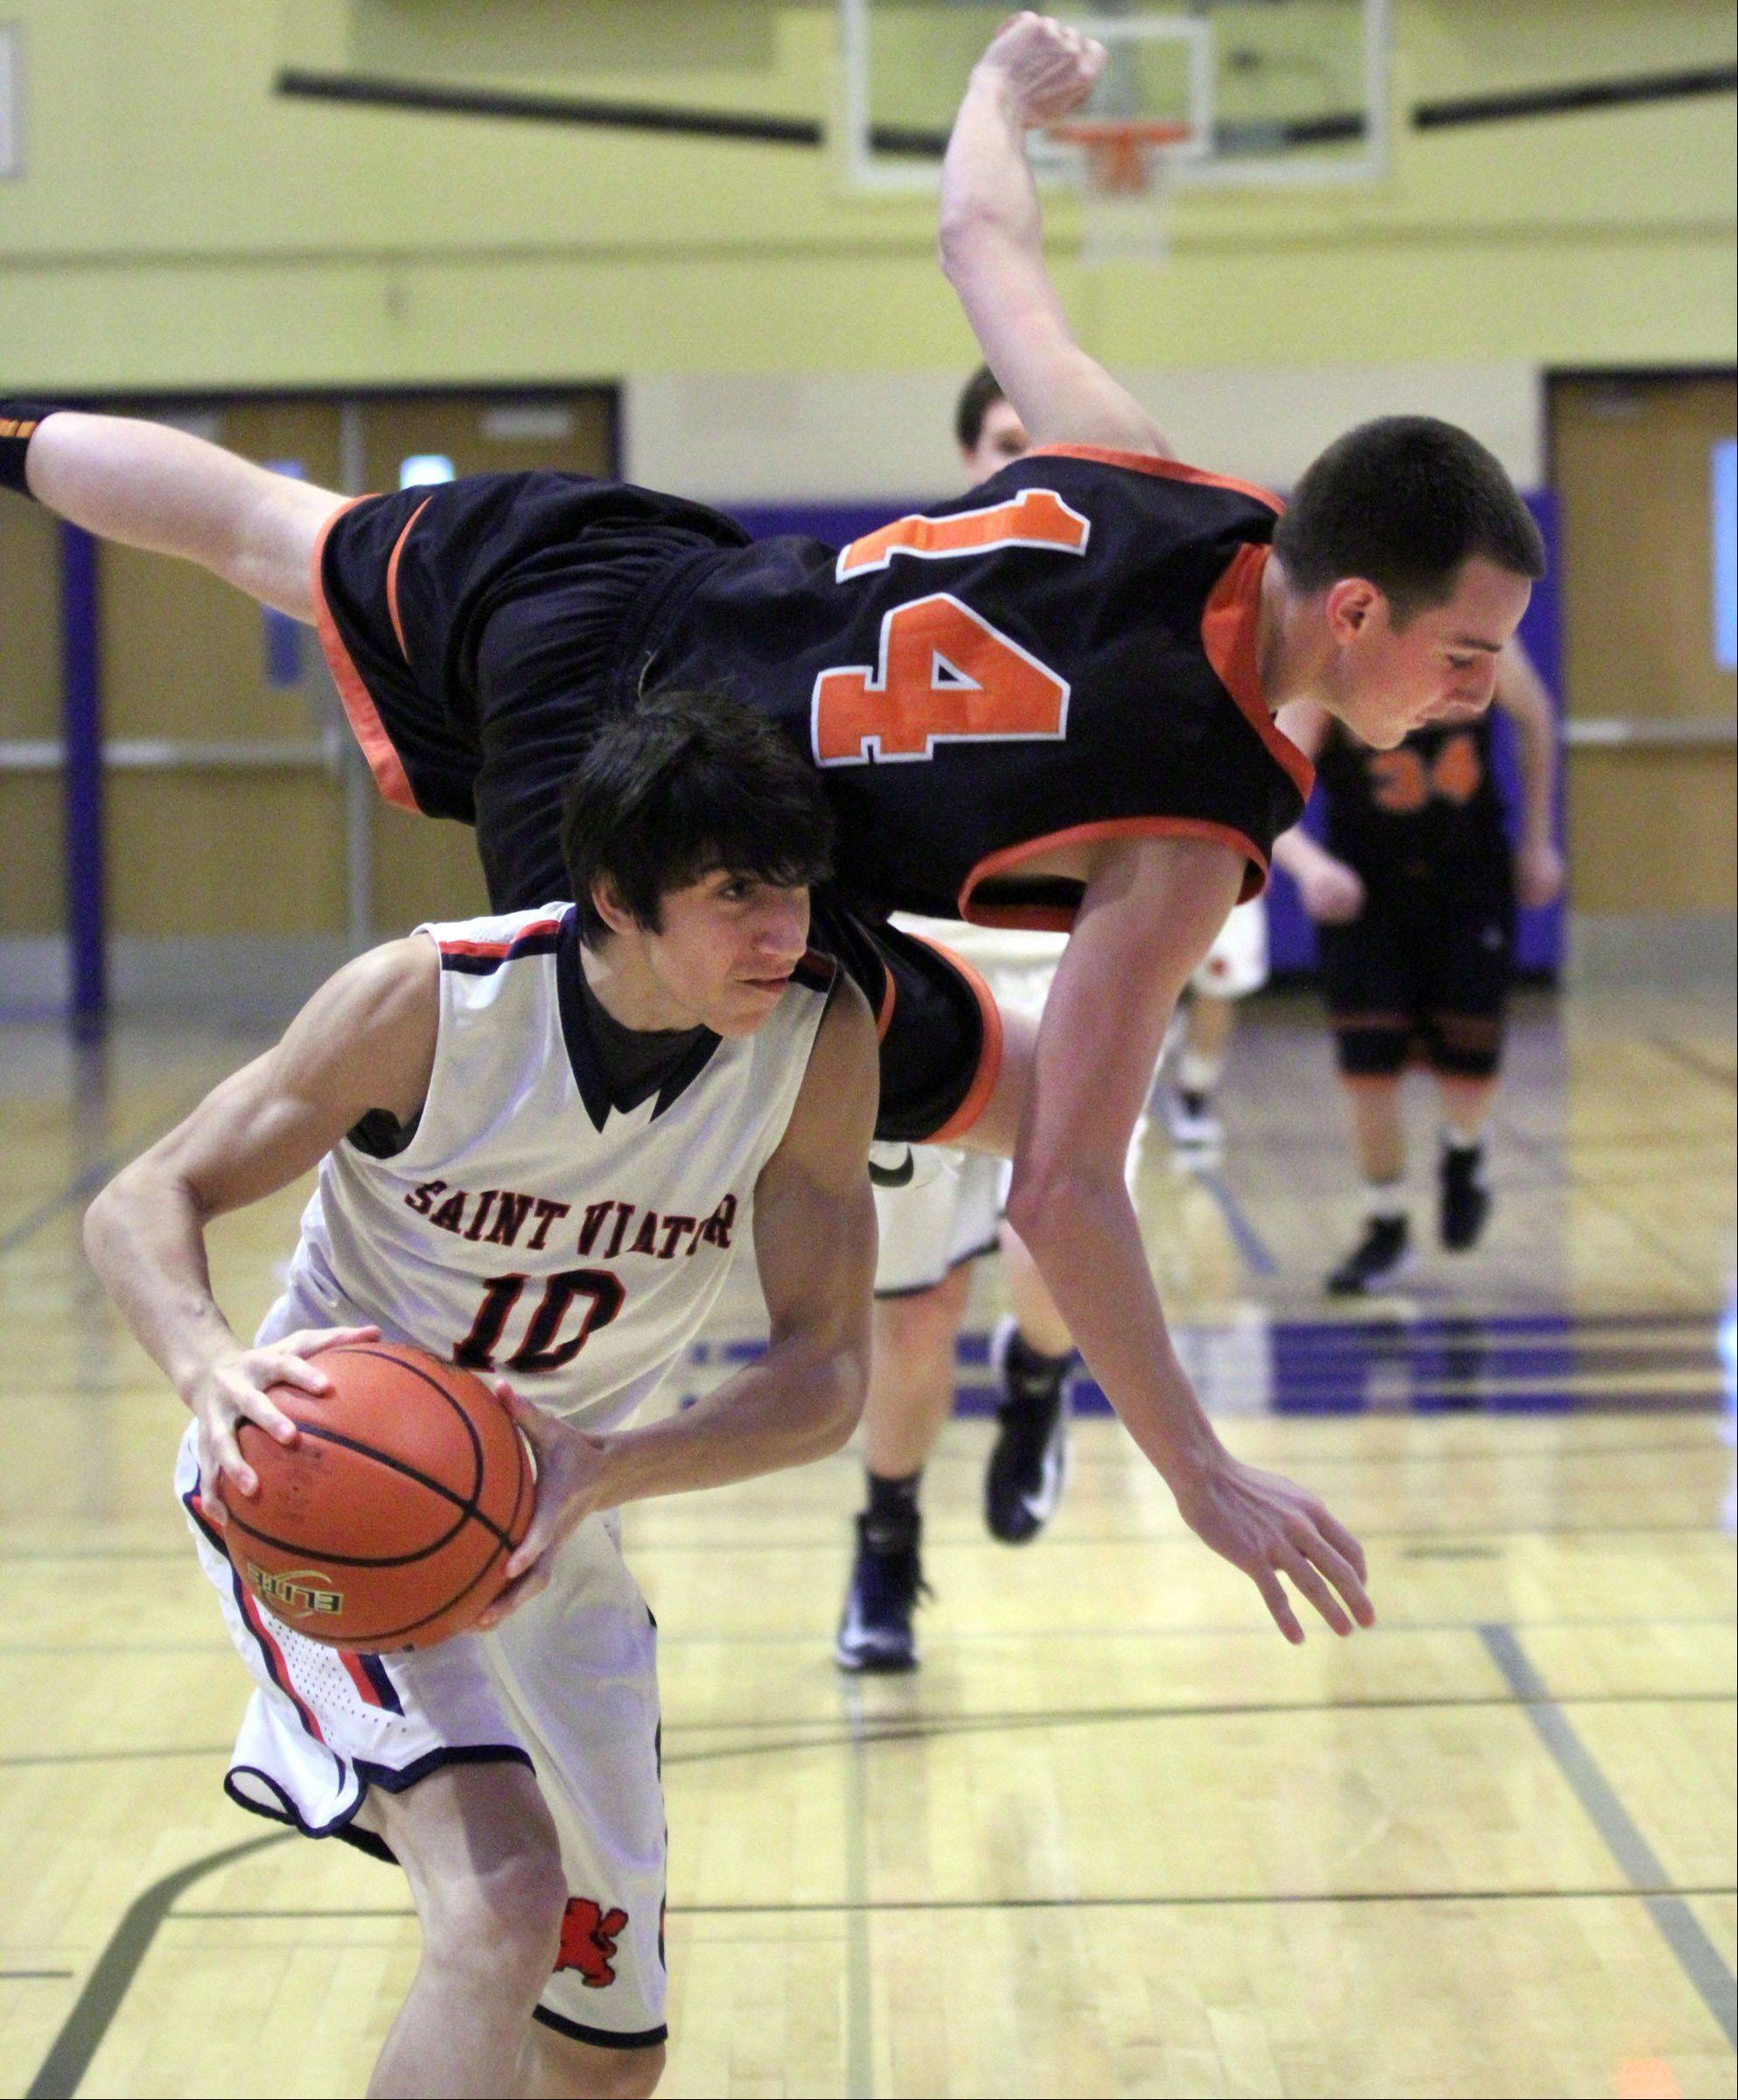 Libertyville's Drew Cayce falls over the back of St. Viator's Robert Grant at the 35th annual Hardwood Classic in Wheeling on Wednesday.